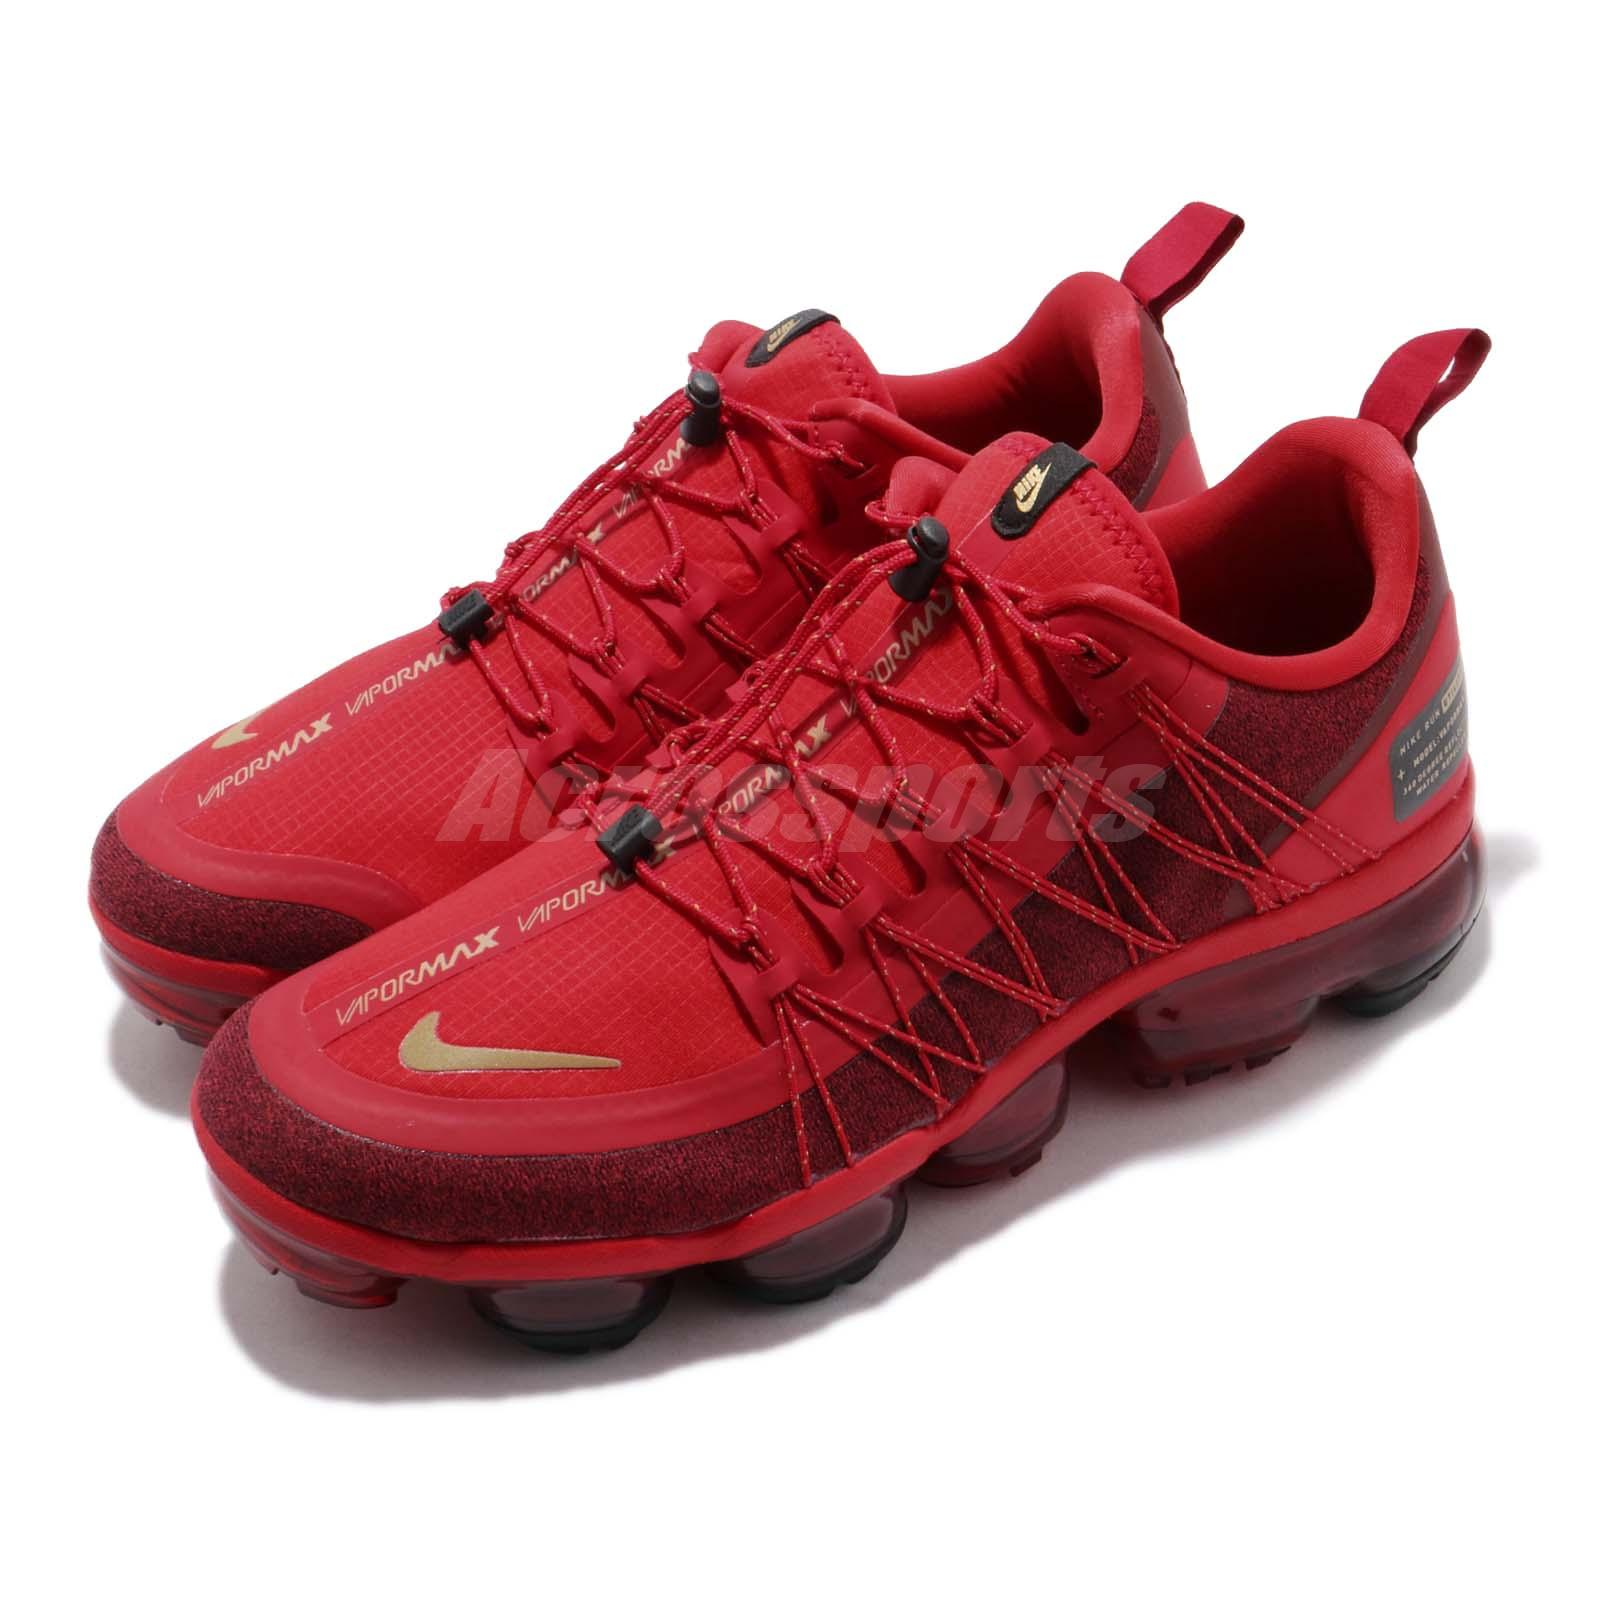 6c7aa9d3fc Details about Nike Air Vapormax RN Utility CNY Chinese New Year Red Gold  Run Shoes BQ7039-600